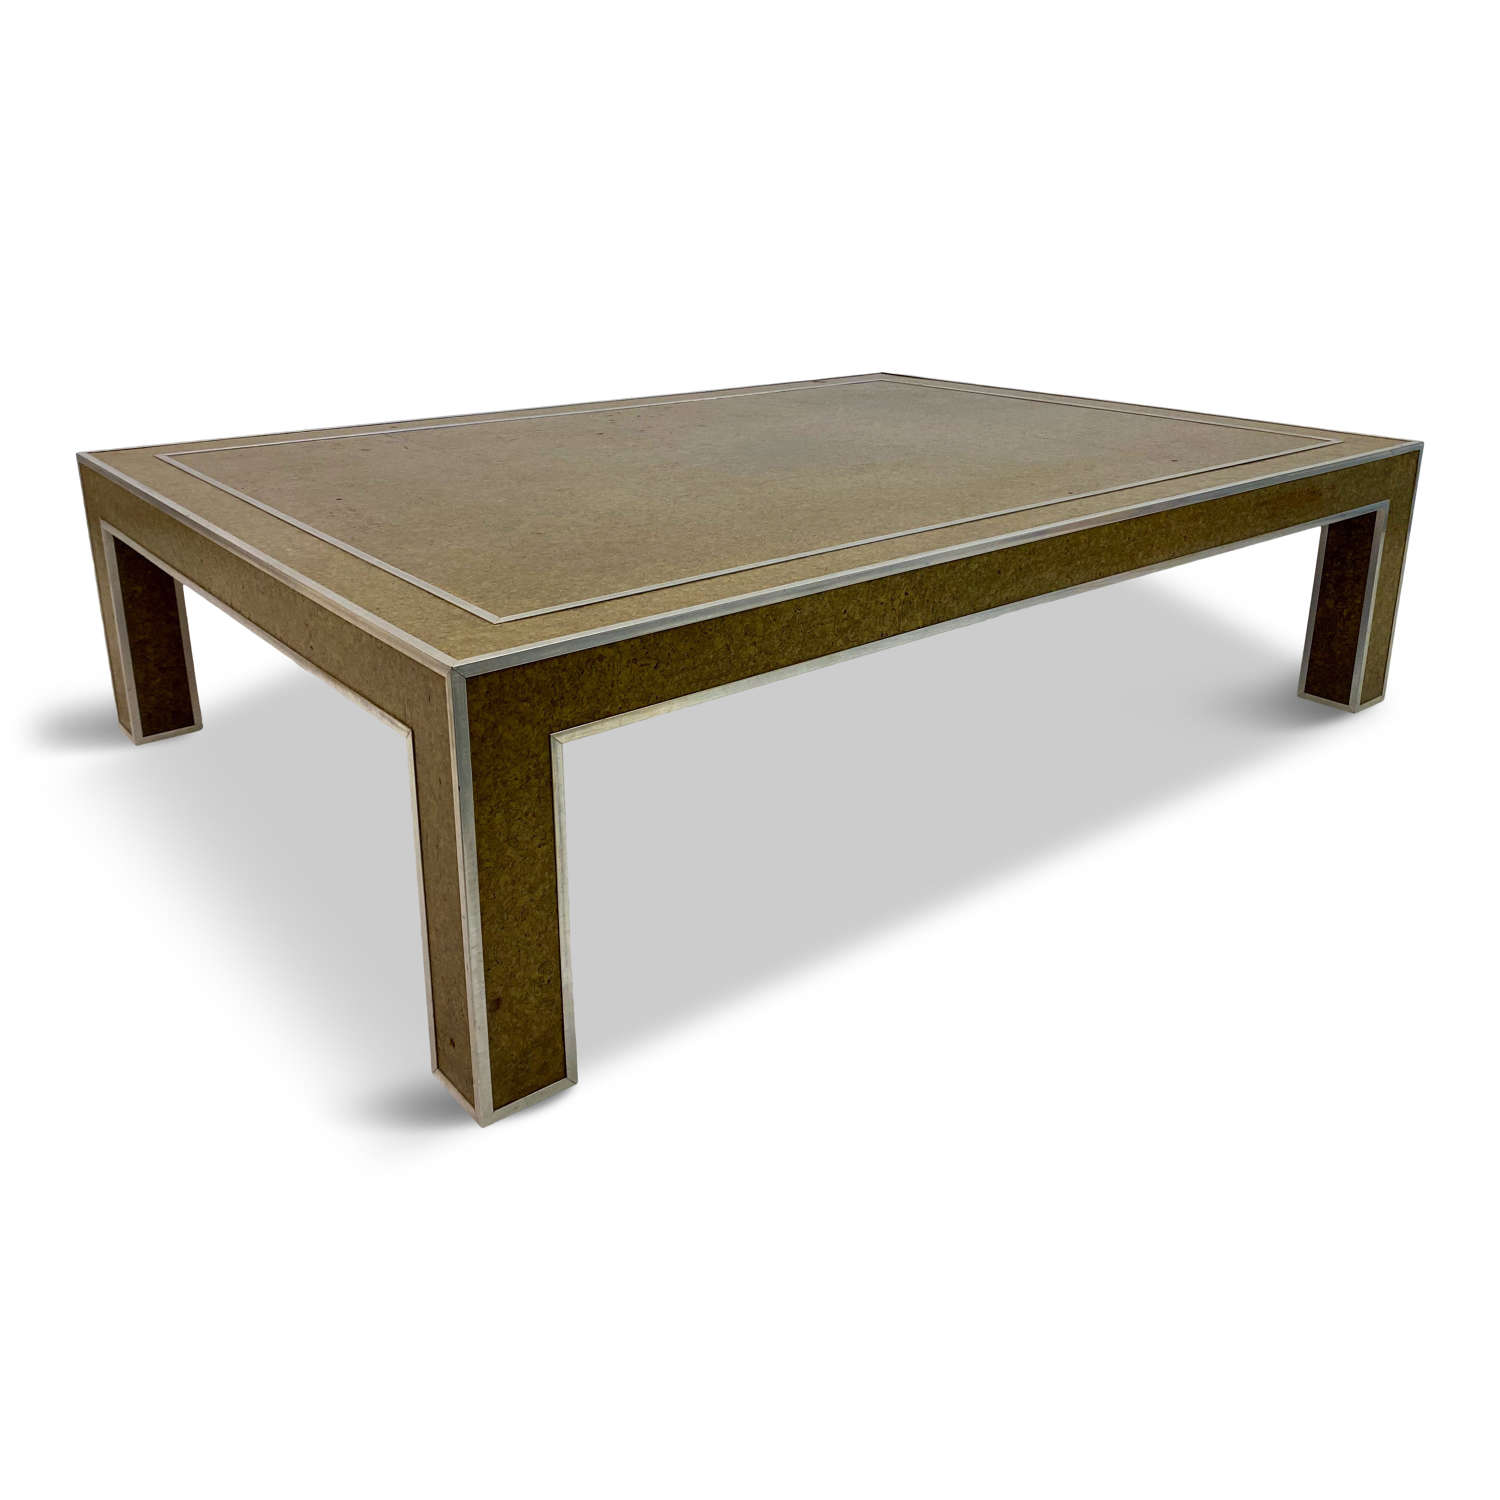 1970s Italian Cork and Chrome Coffee Table by Romeo Rega